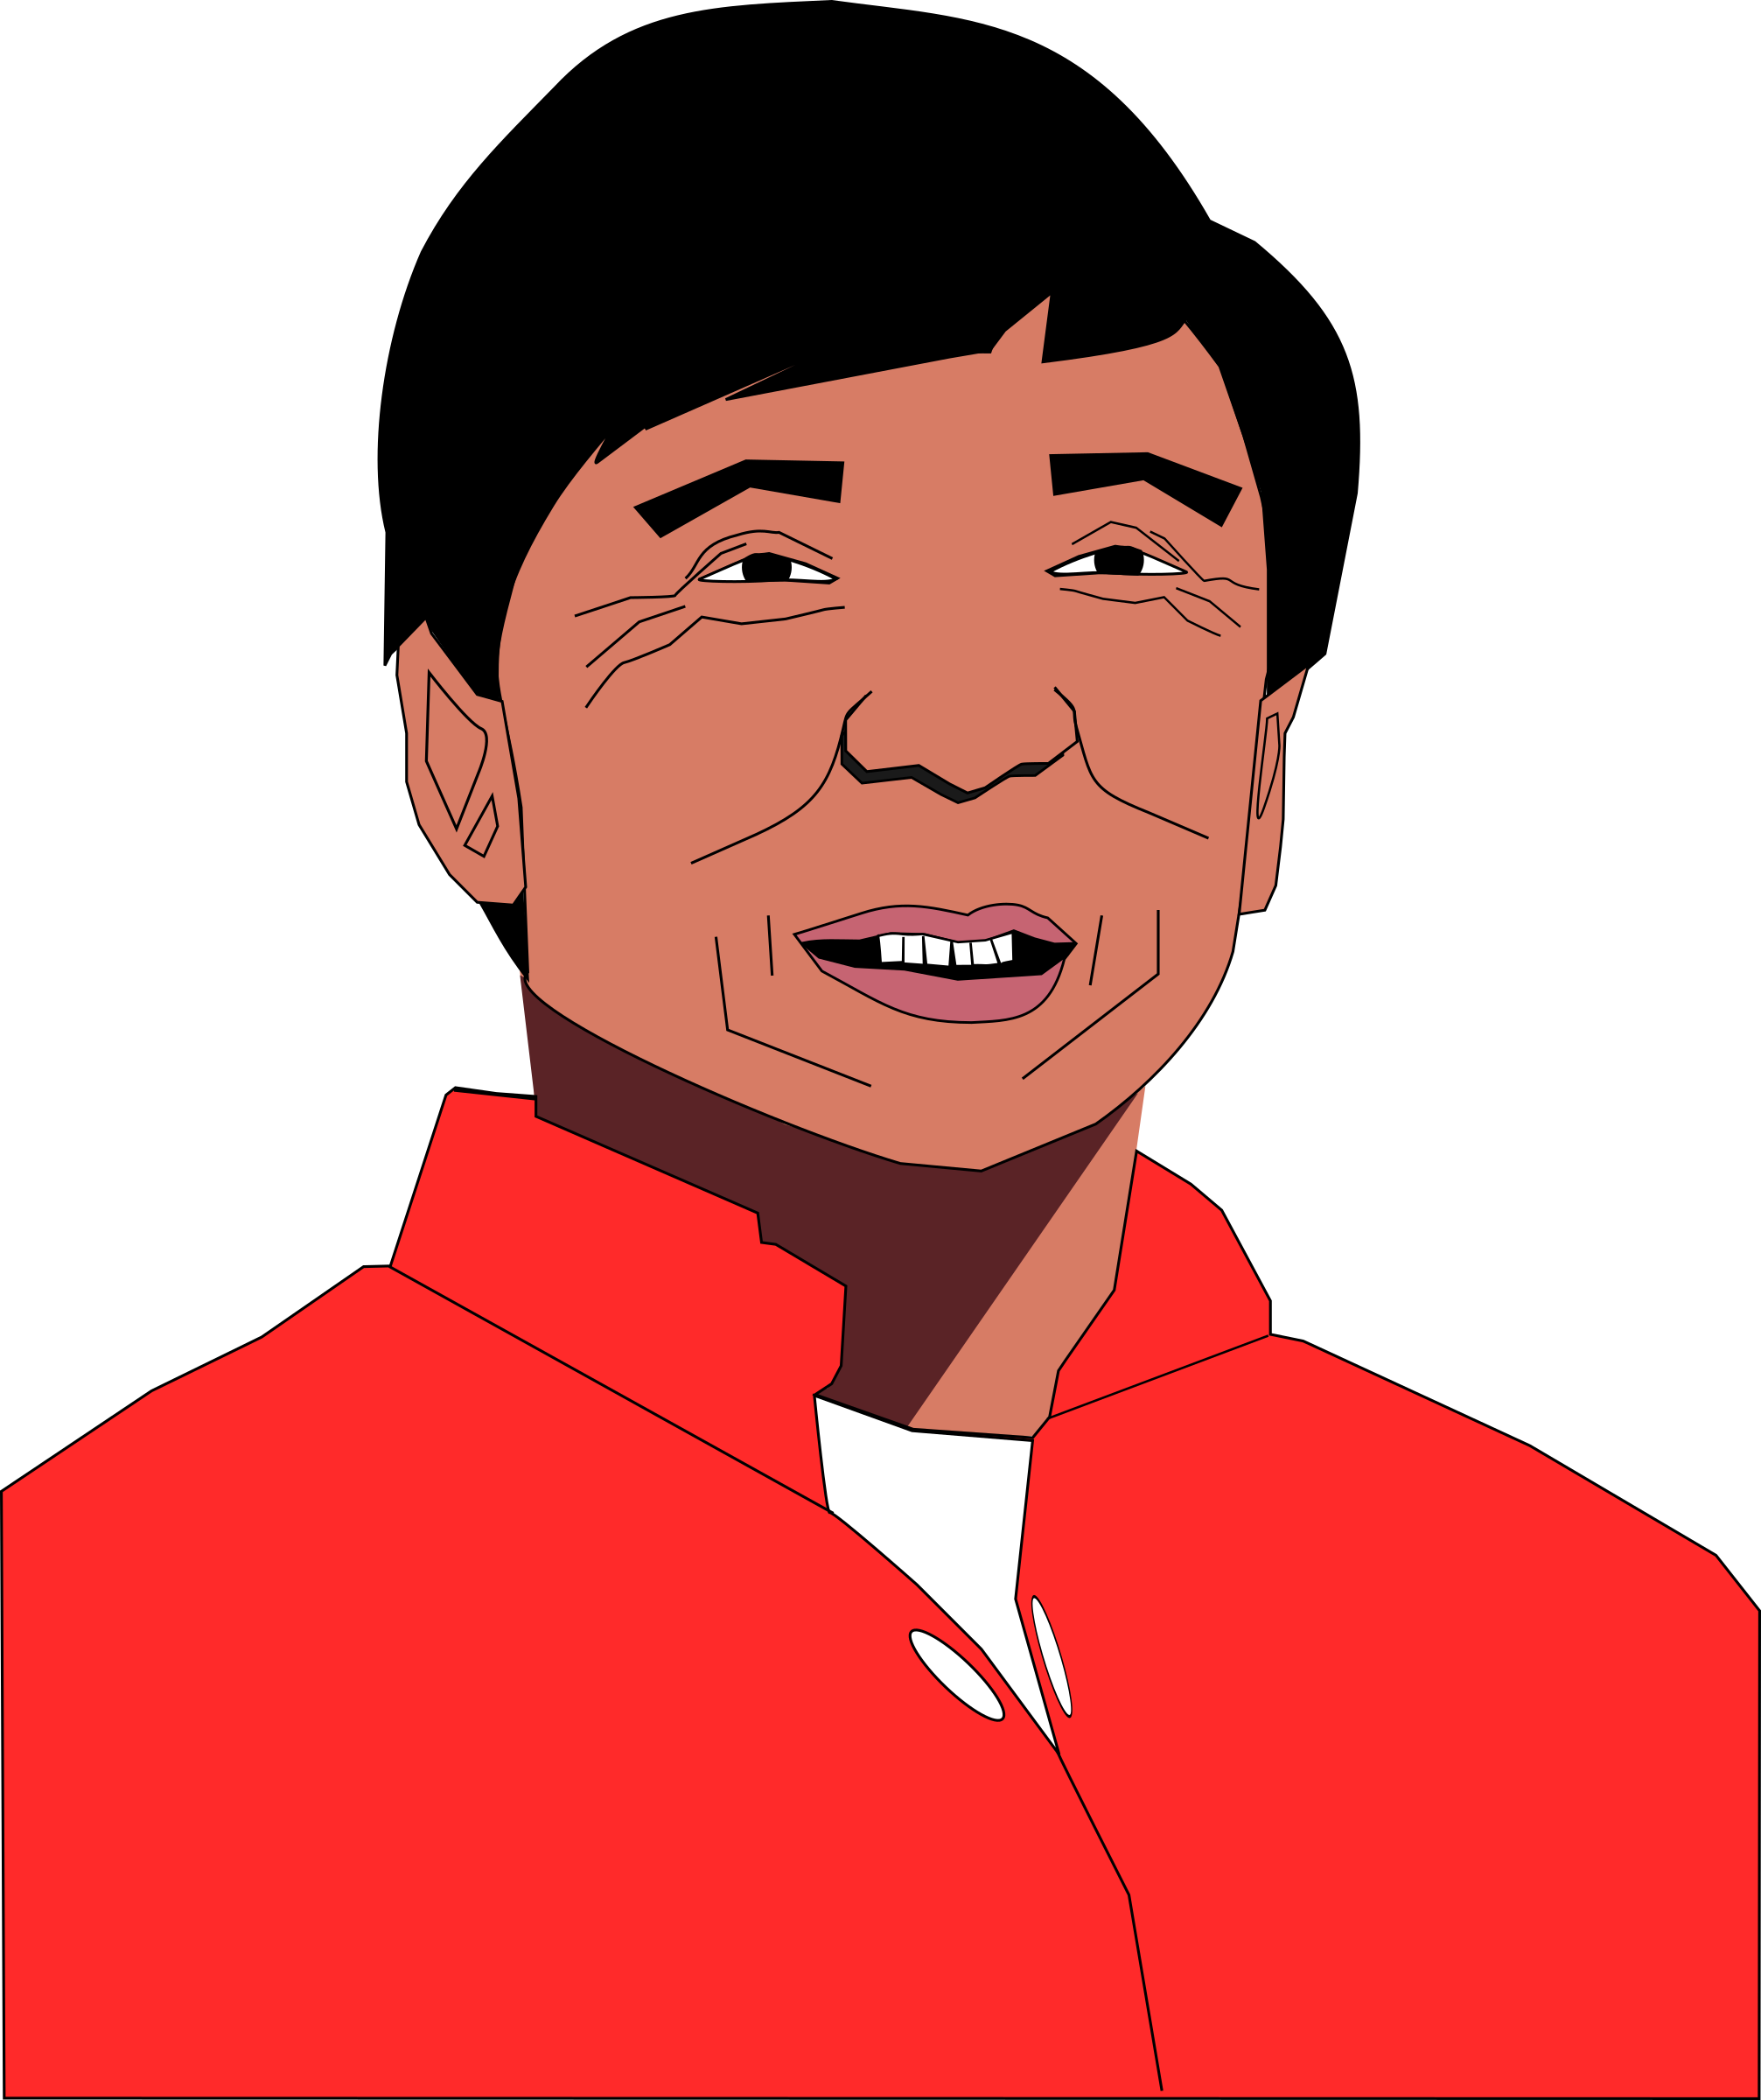 Queen clipart jackie. Chan big image png